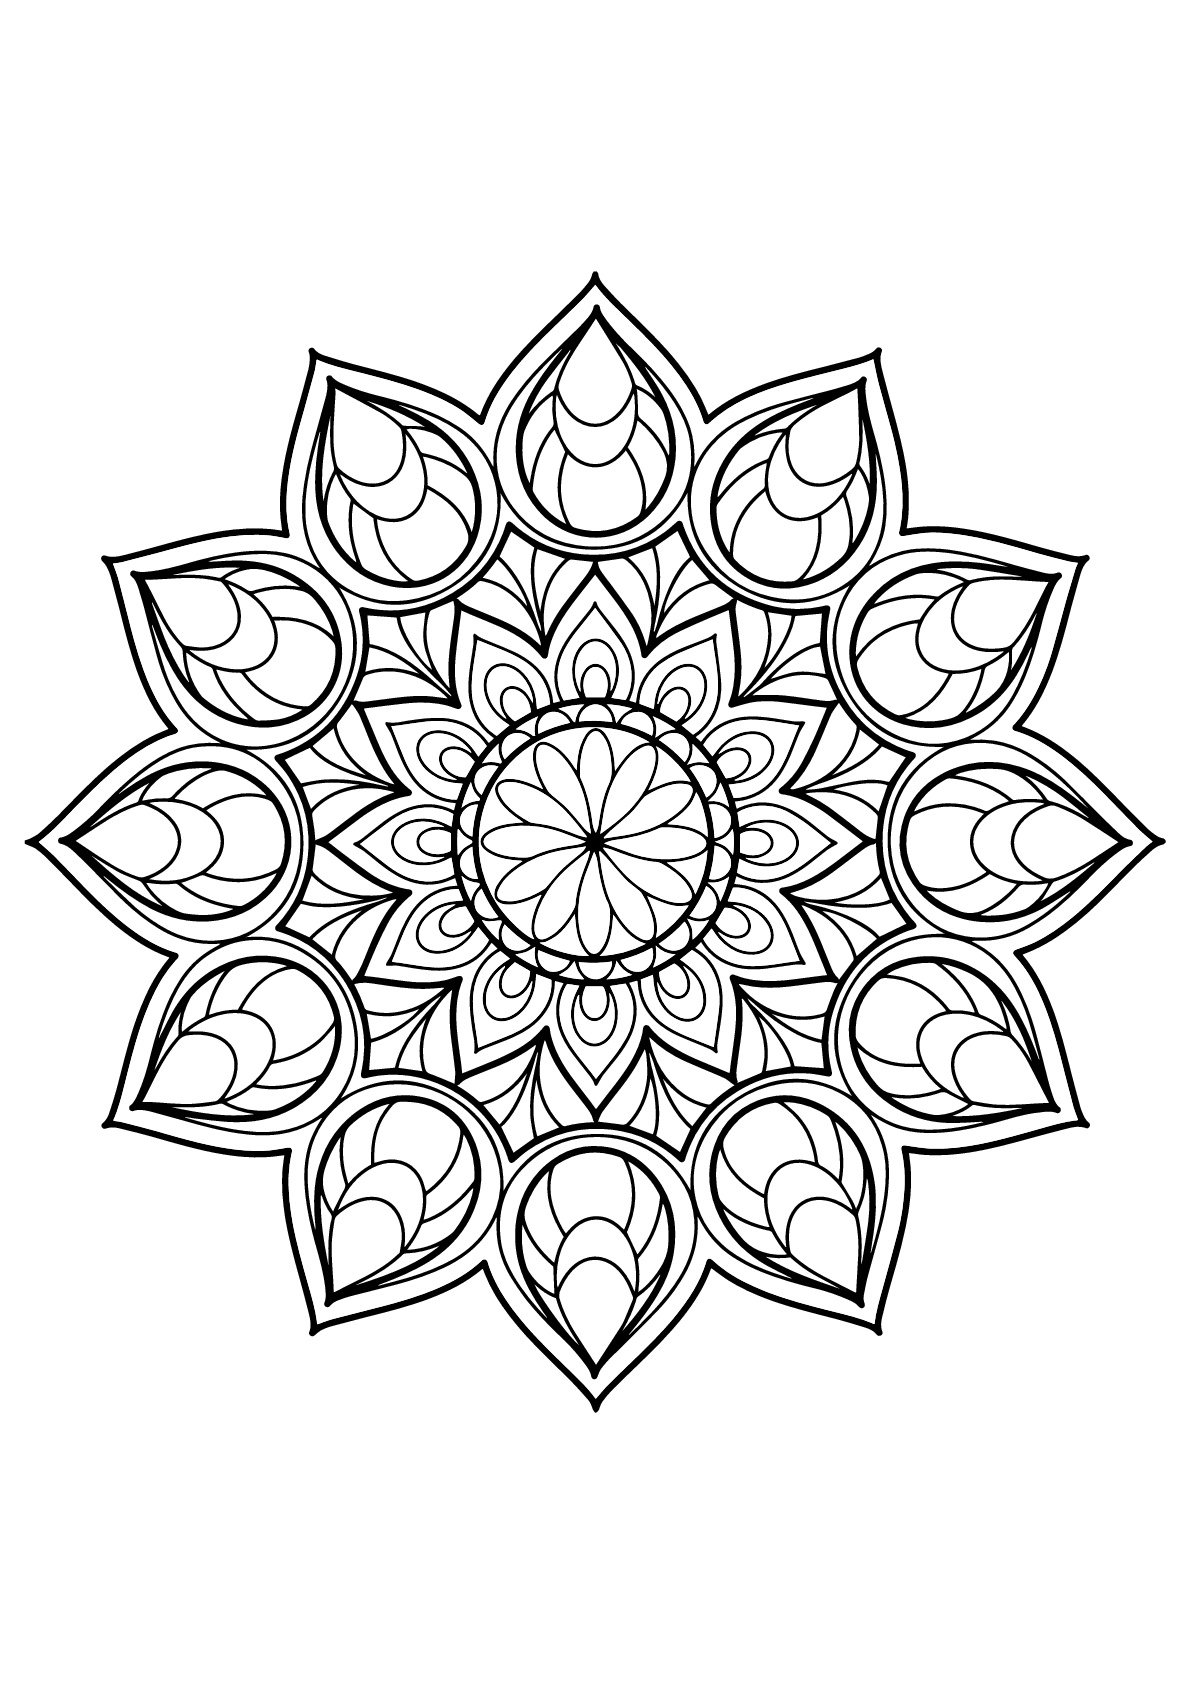 Mandala coloring pages for adults free